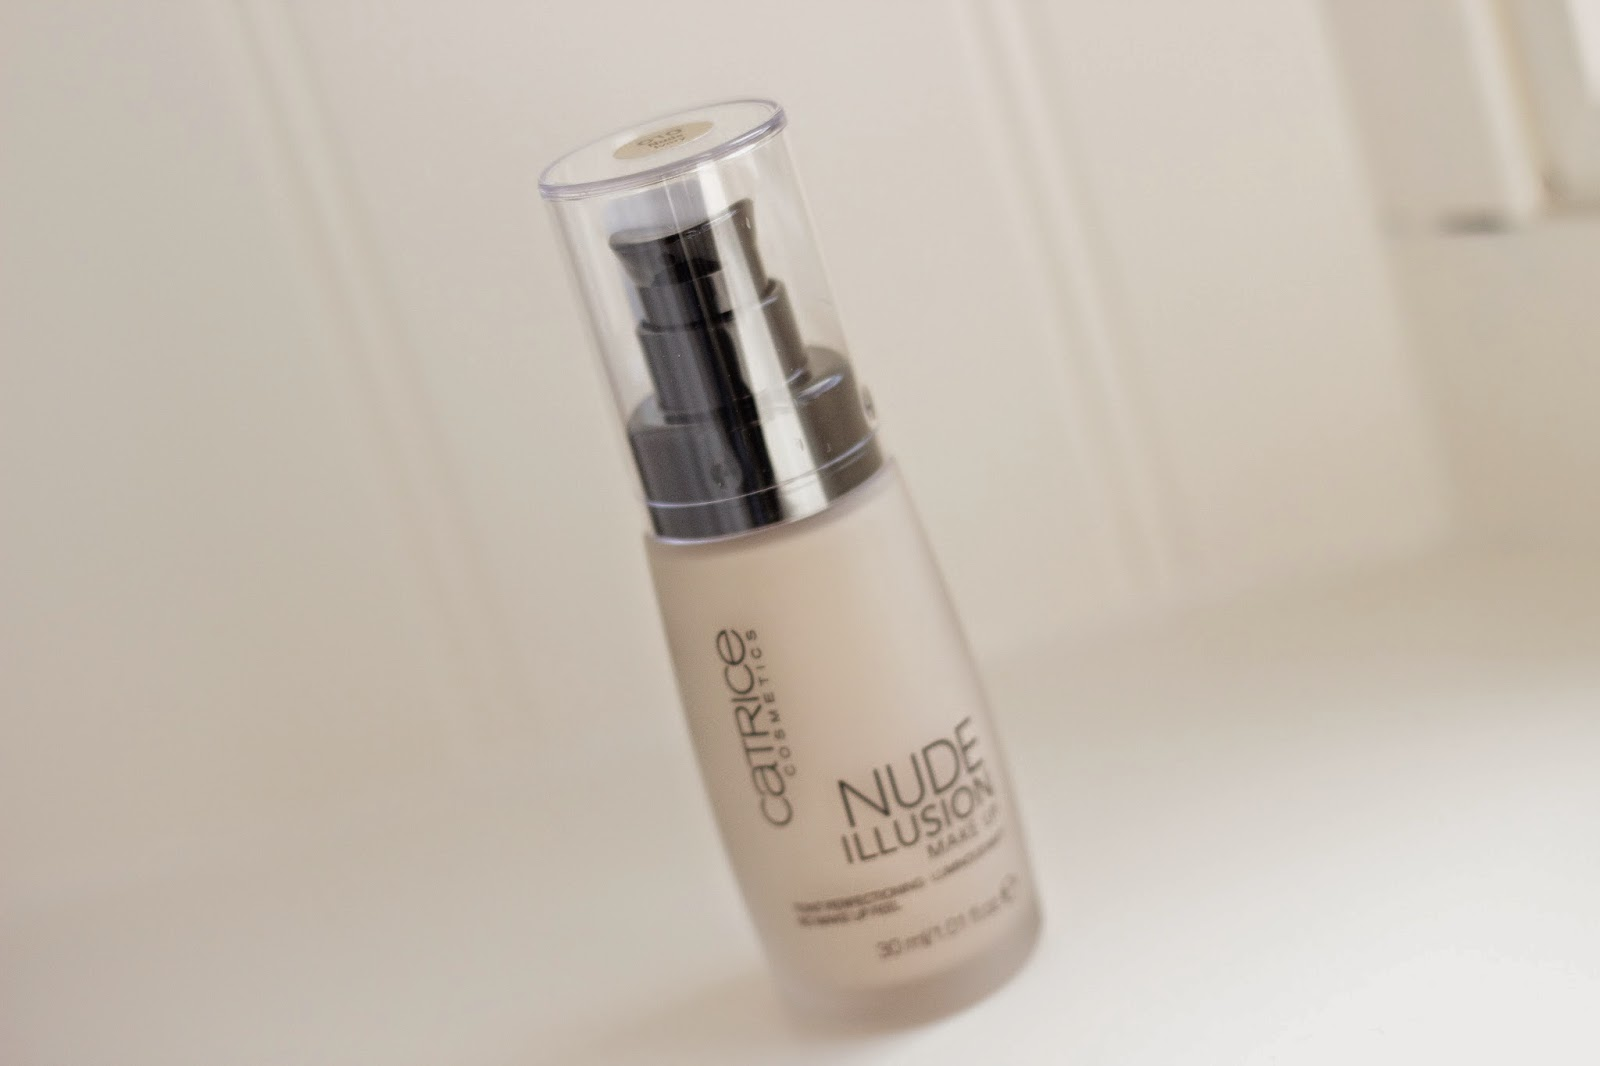 First Impressions Catrice Nude Illusion make up foundation